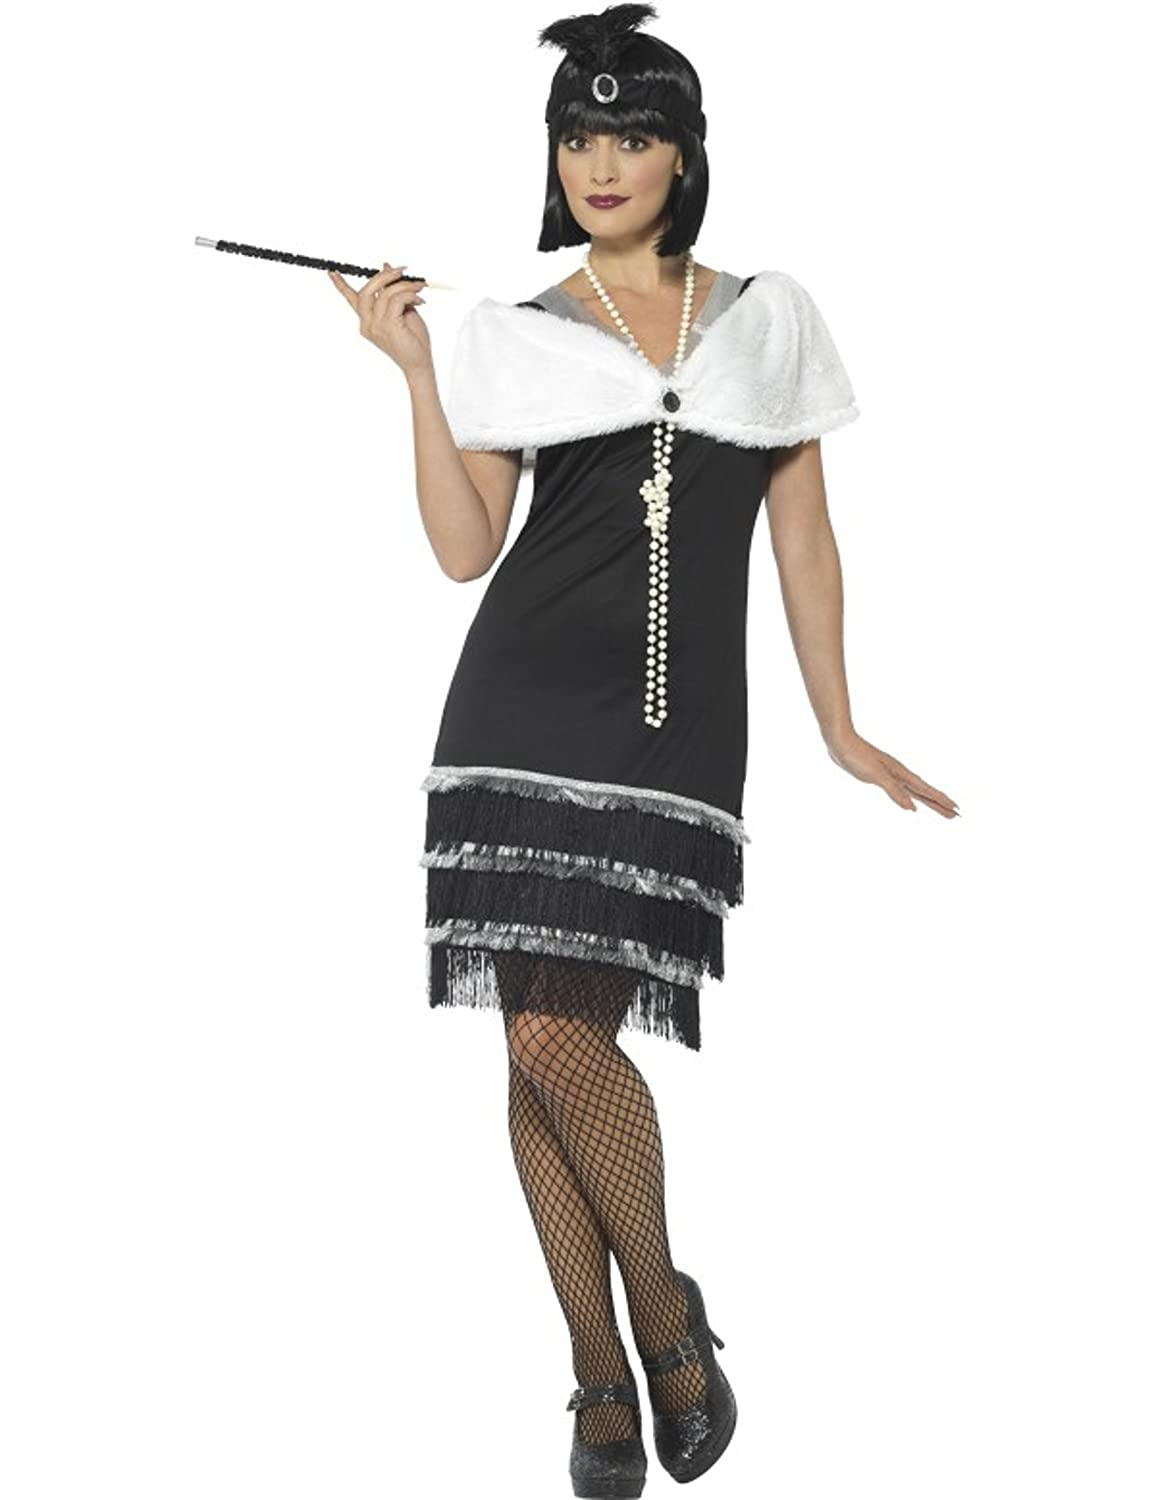 1920s Costumes: Flapper, Great Gatsby, Gangster Girl Smiffys Womens Flapper Costume $23.59 AT vintagedancer.com